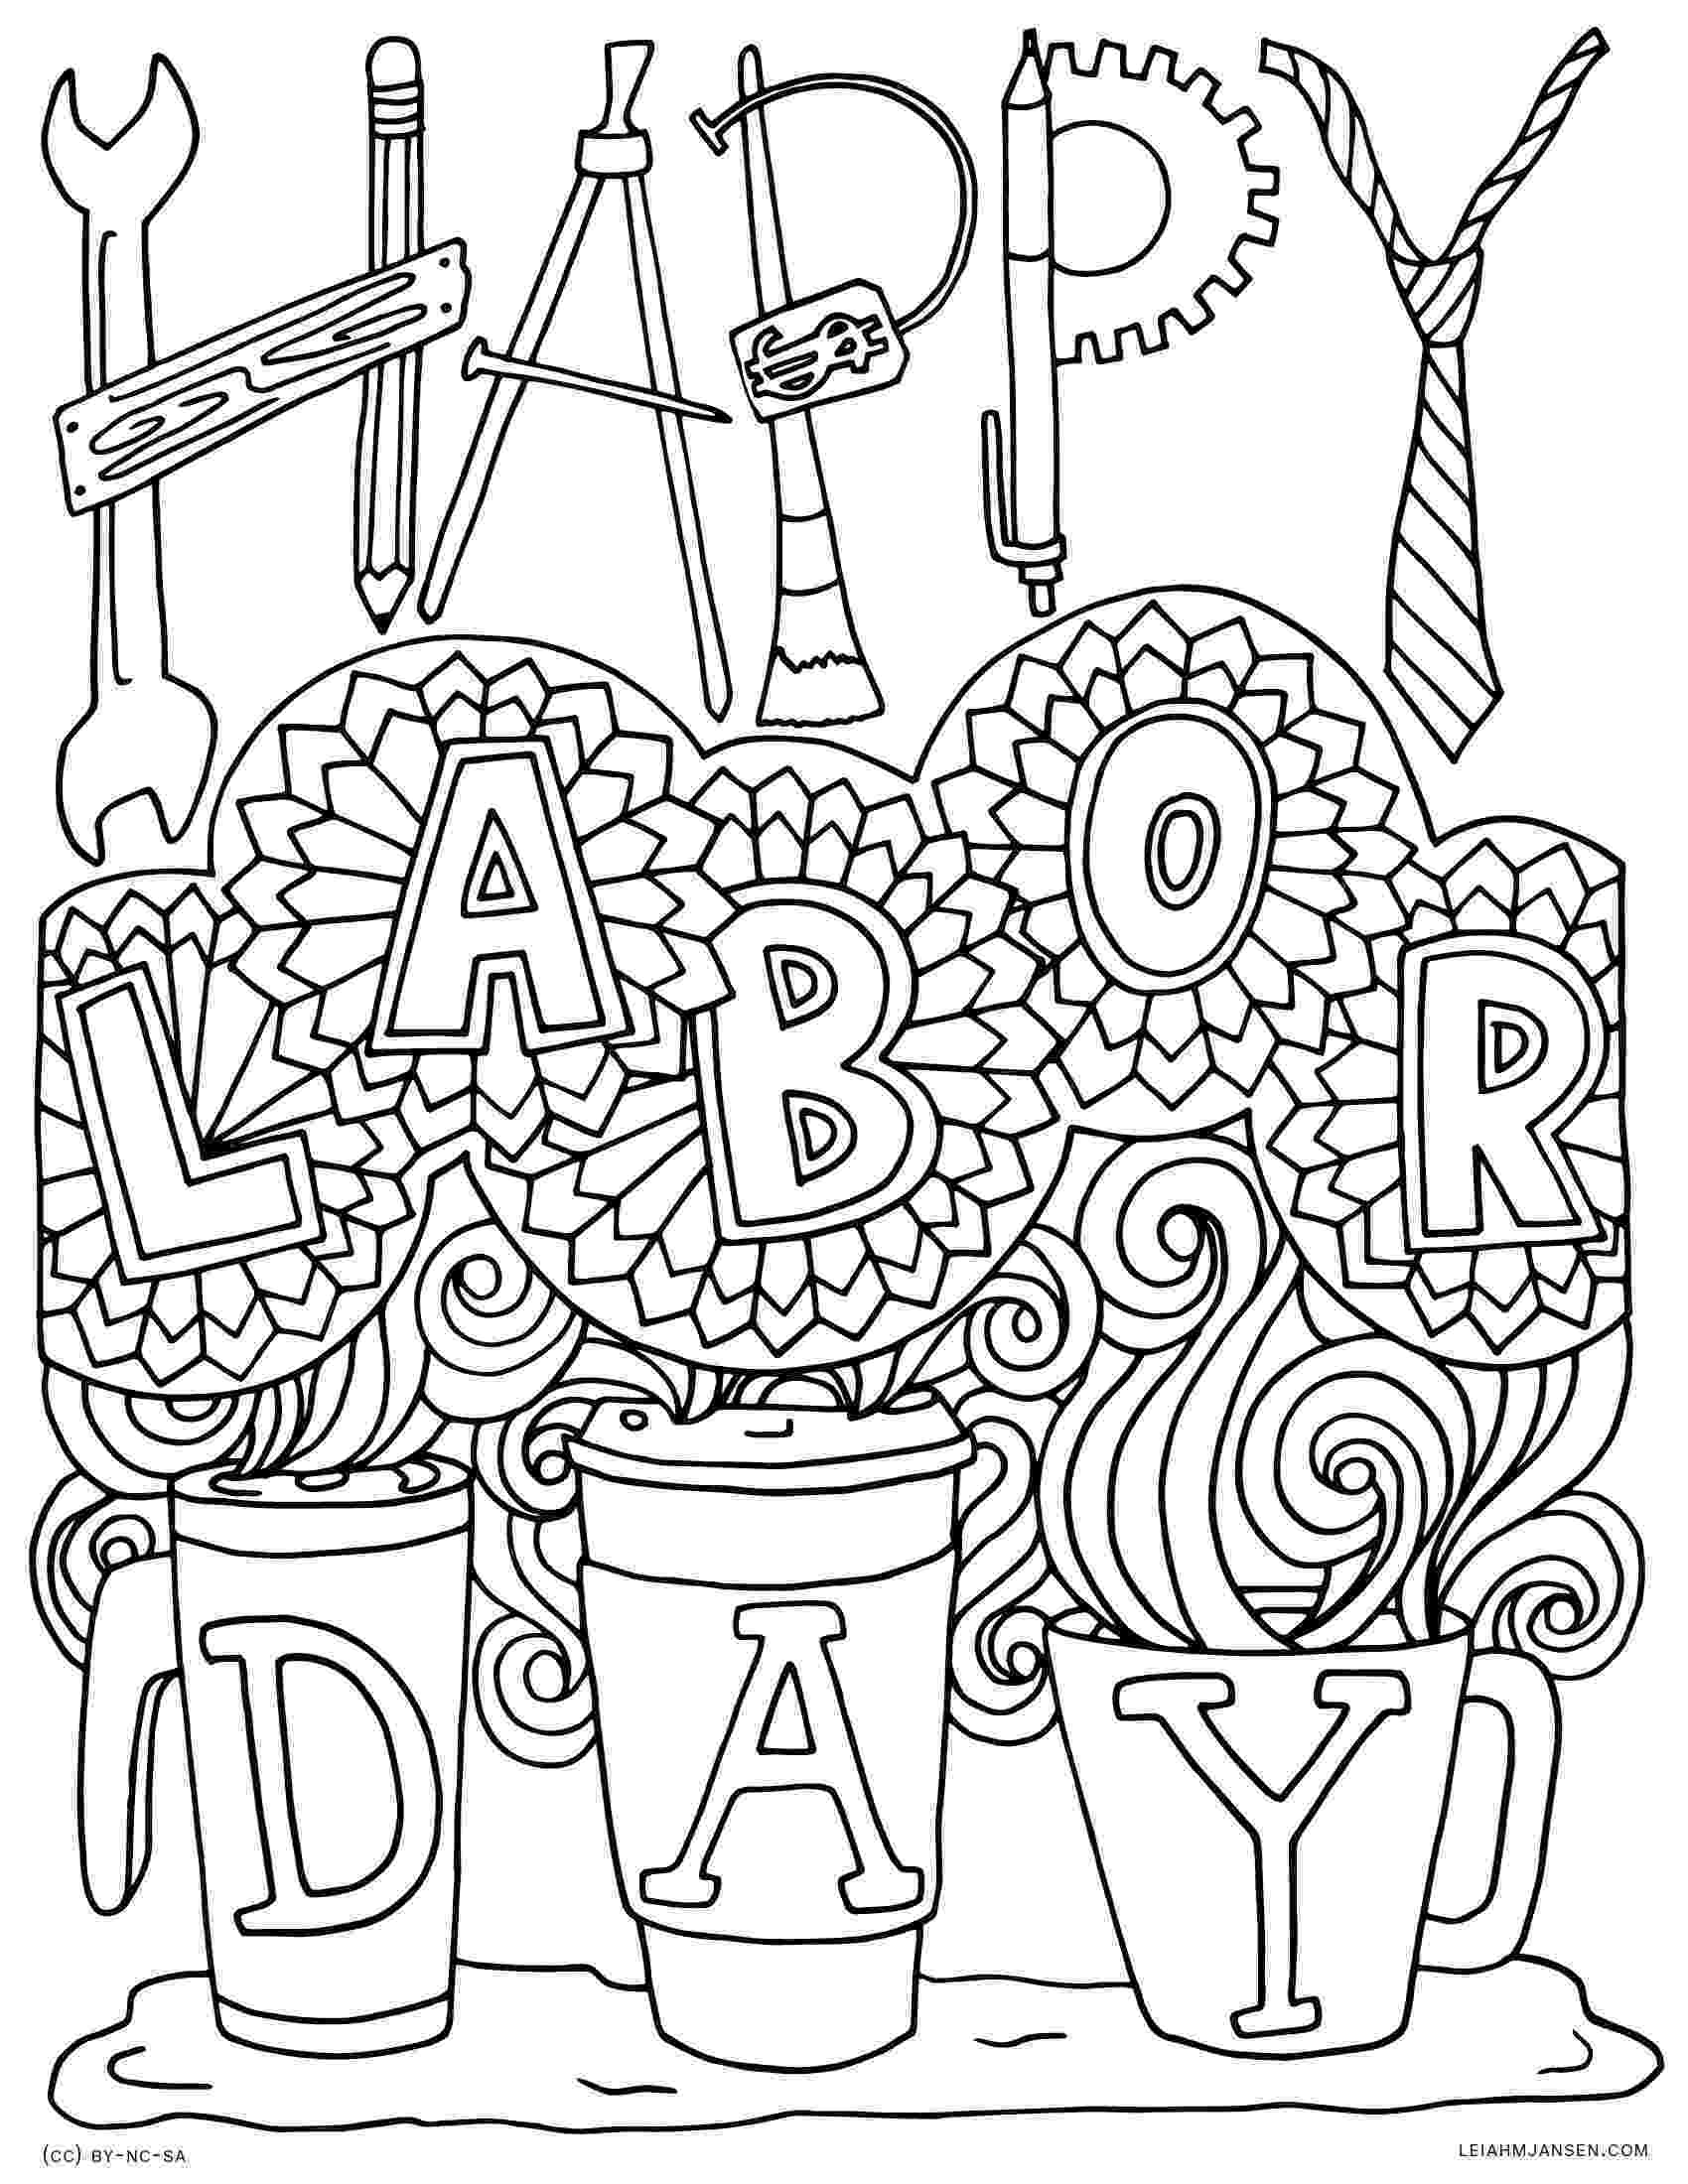 labor day coloring pages free printable happy labor day coloring page free printable coloring pages free day printable pages labor coloring